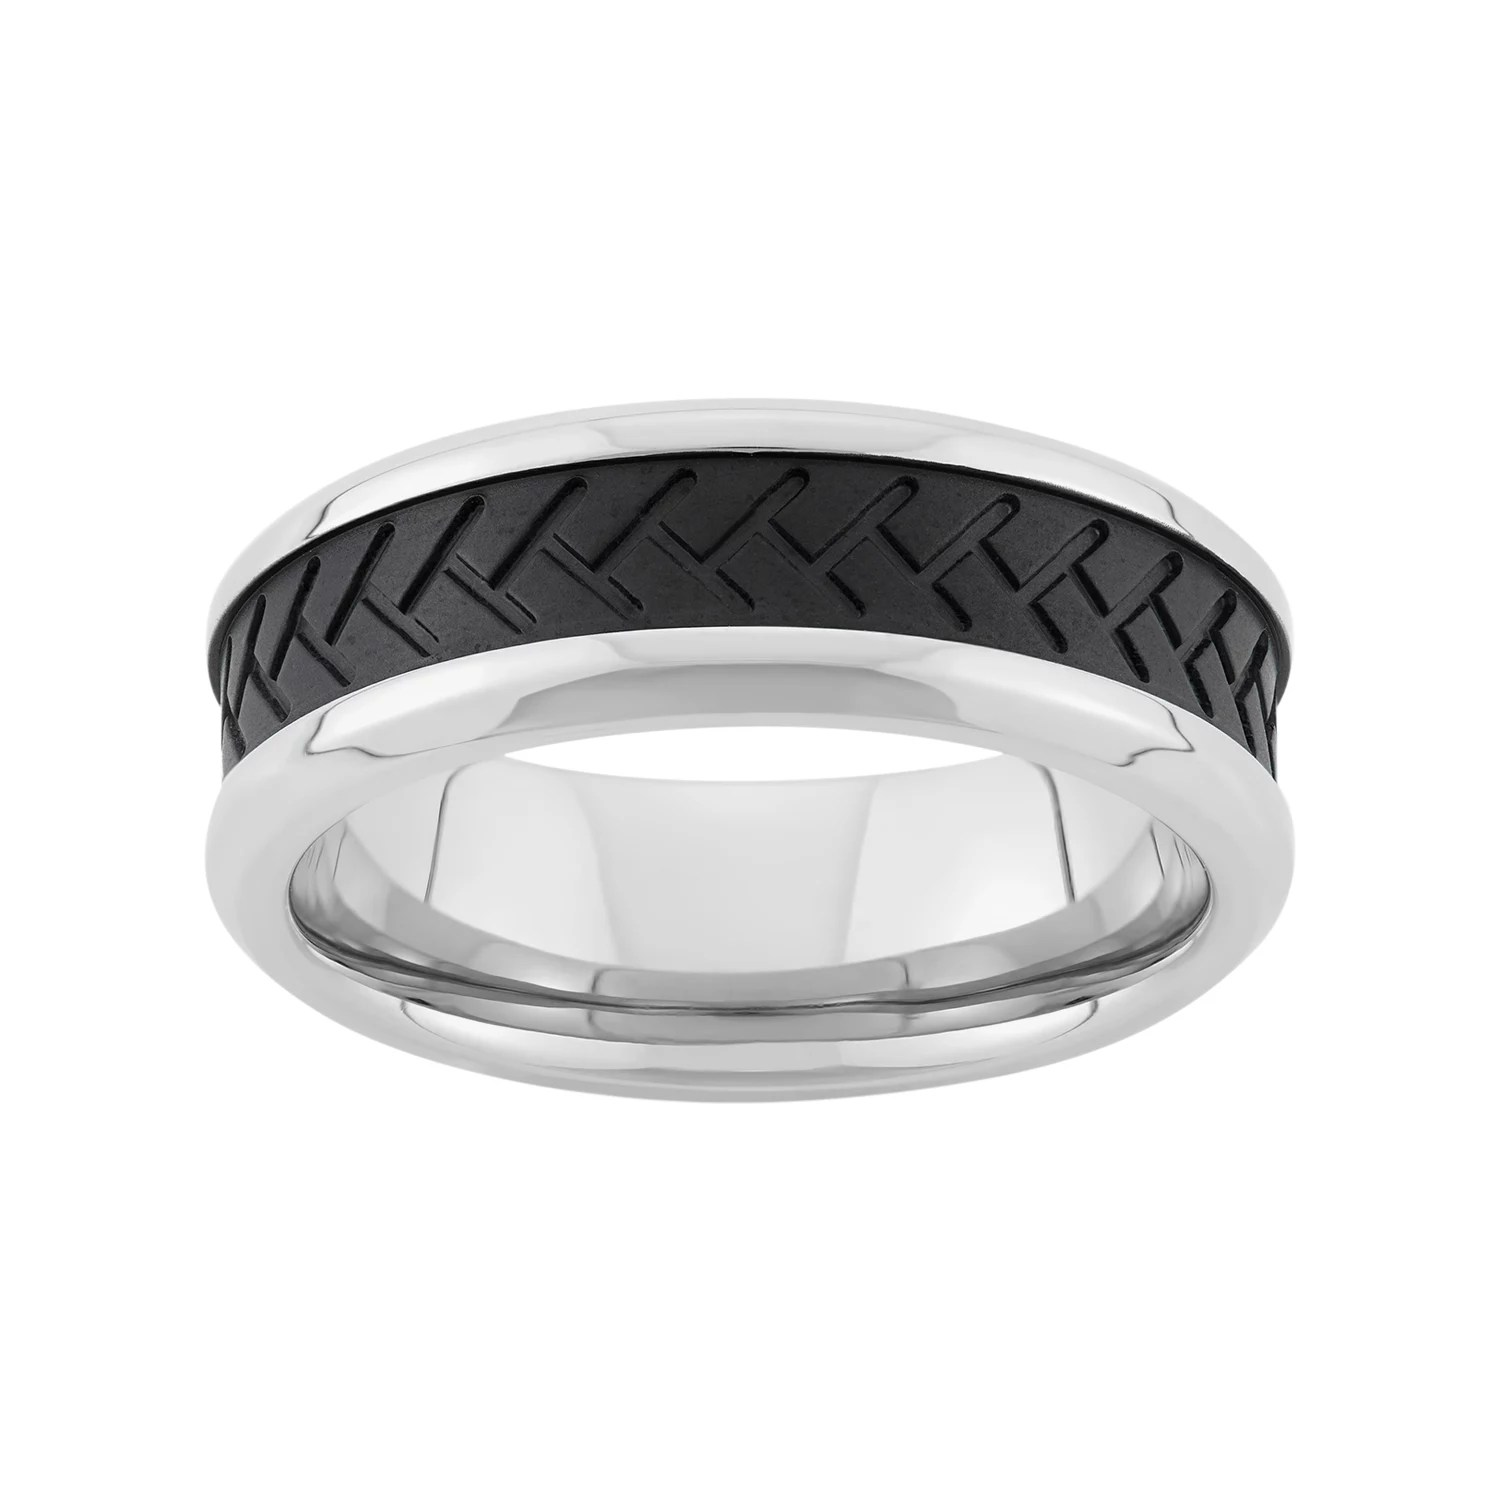 Two Tone Stainless Steel Tire Tread Wedding Band Men